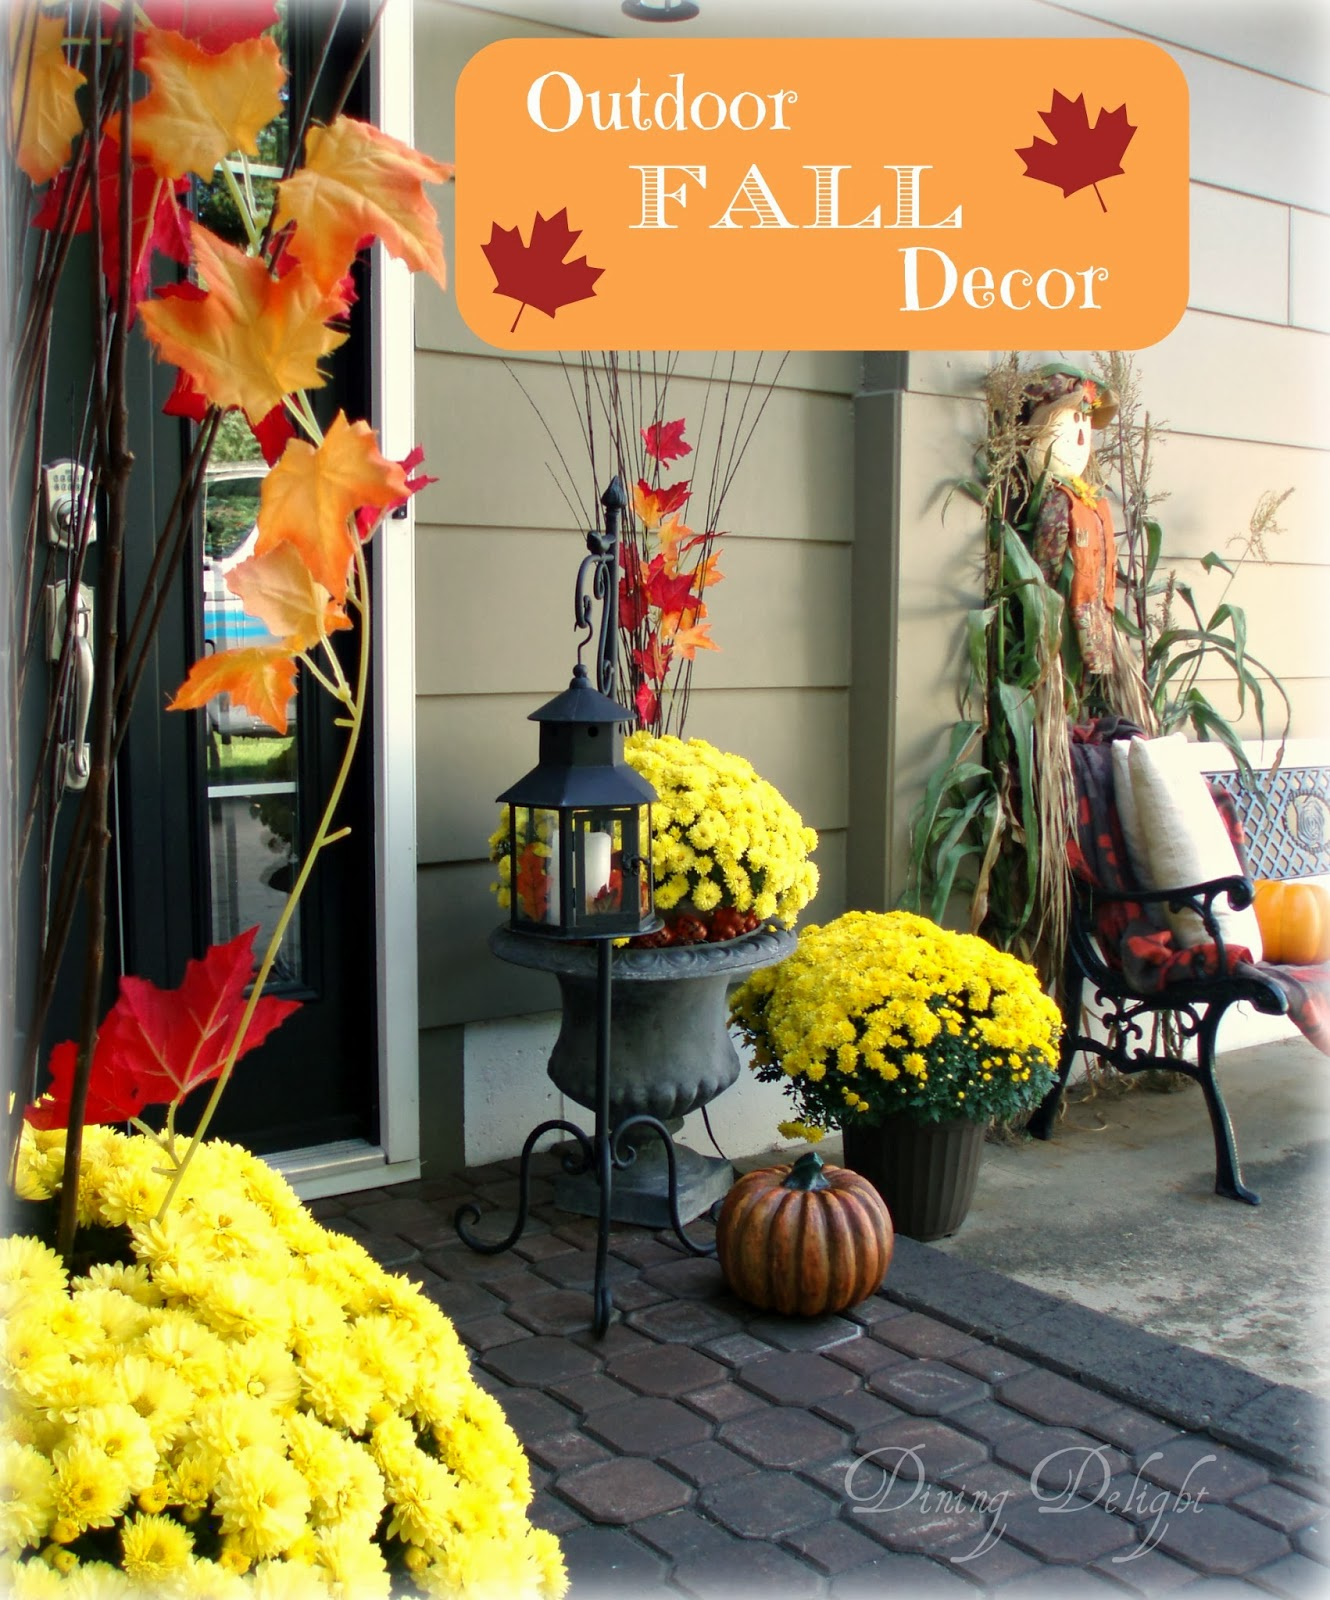 Autumn Yard Decorations: Dining Delight: Outdoor Fall Decor